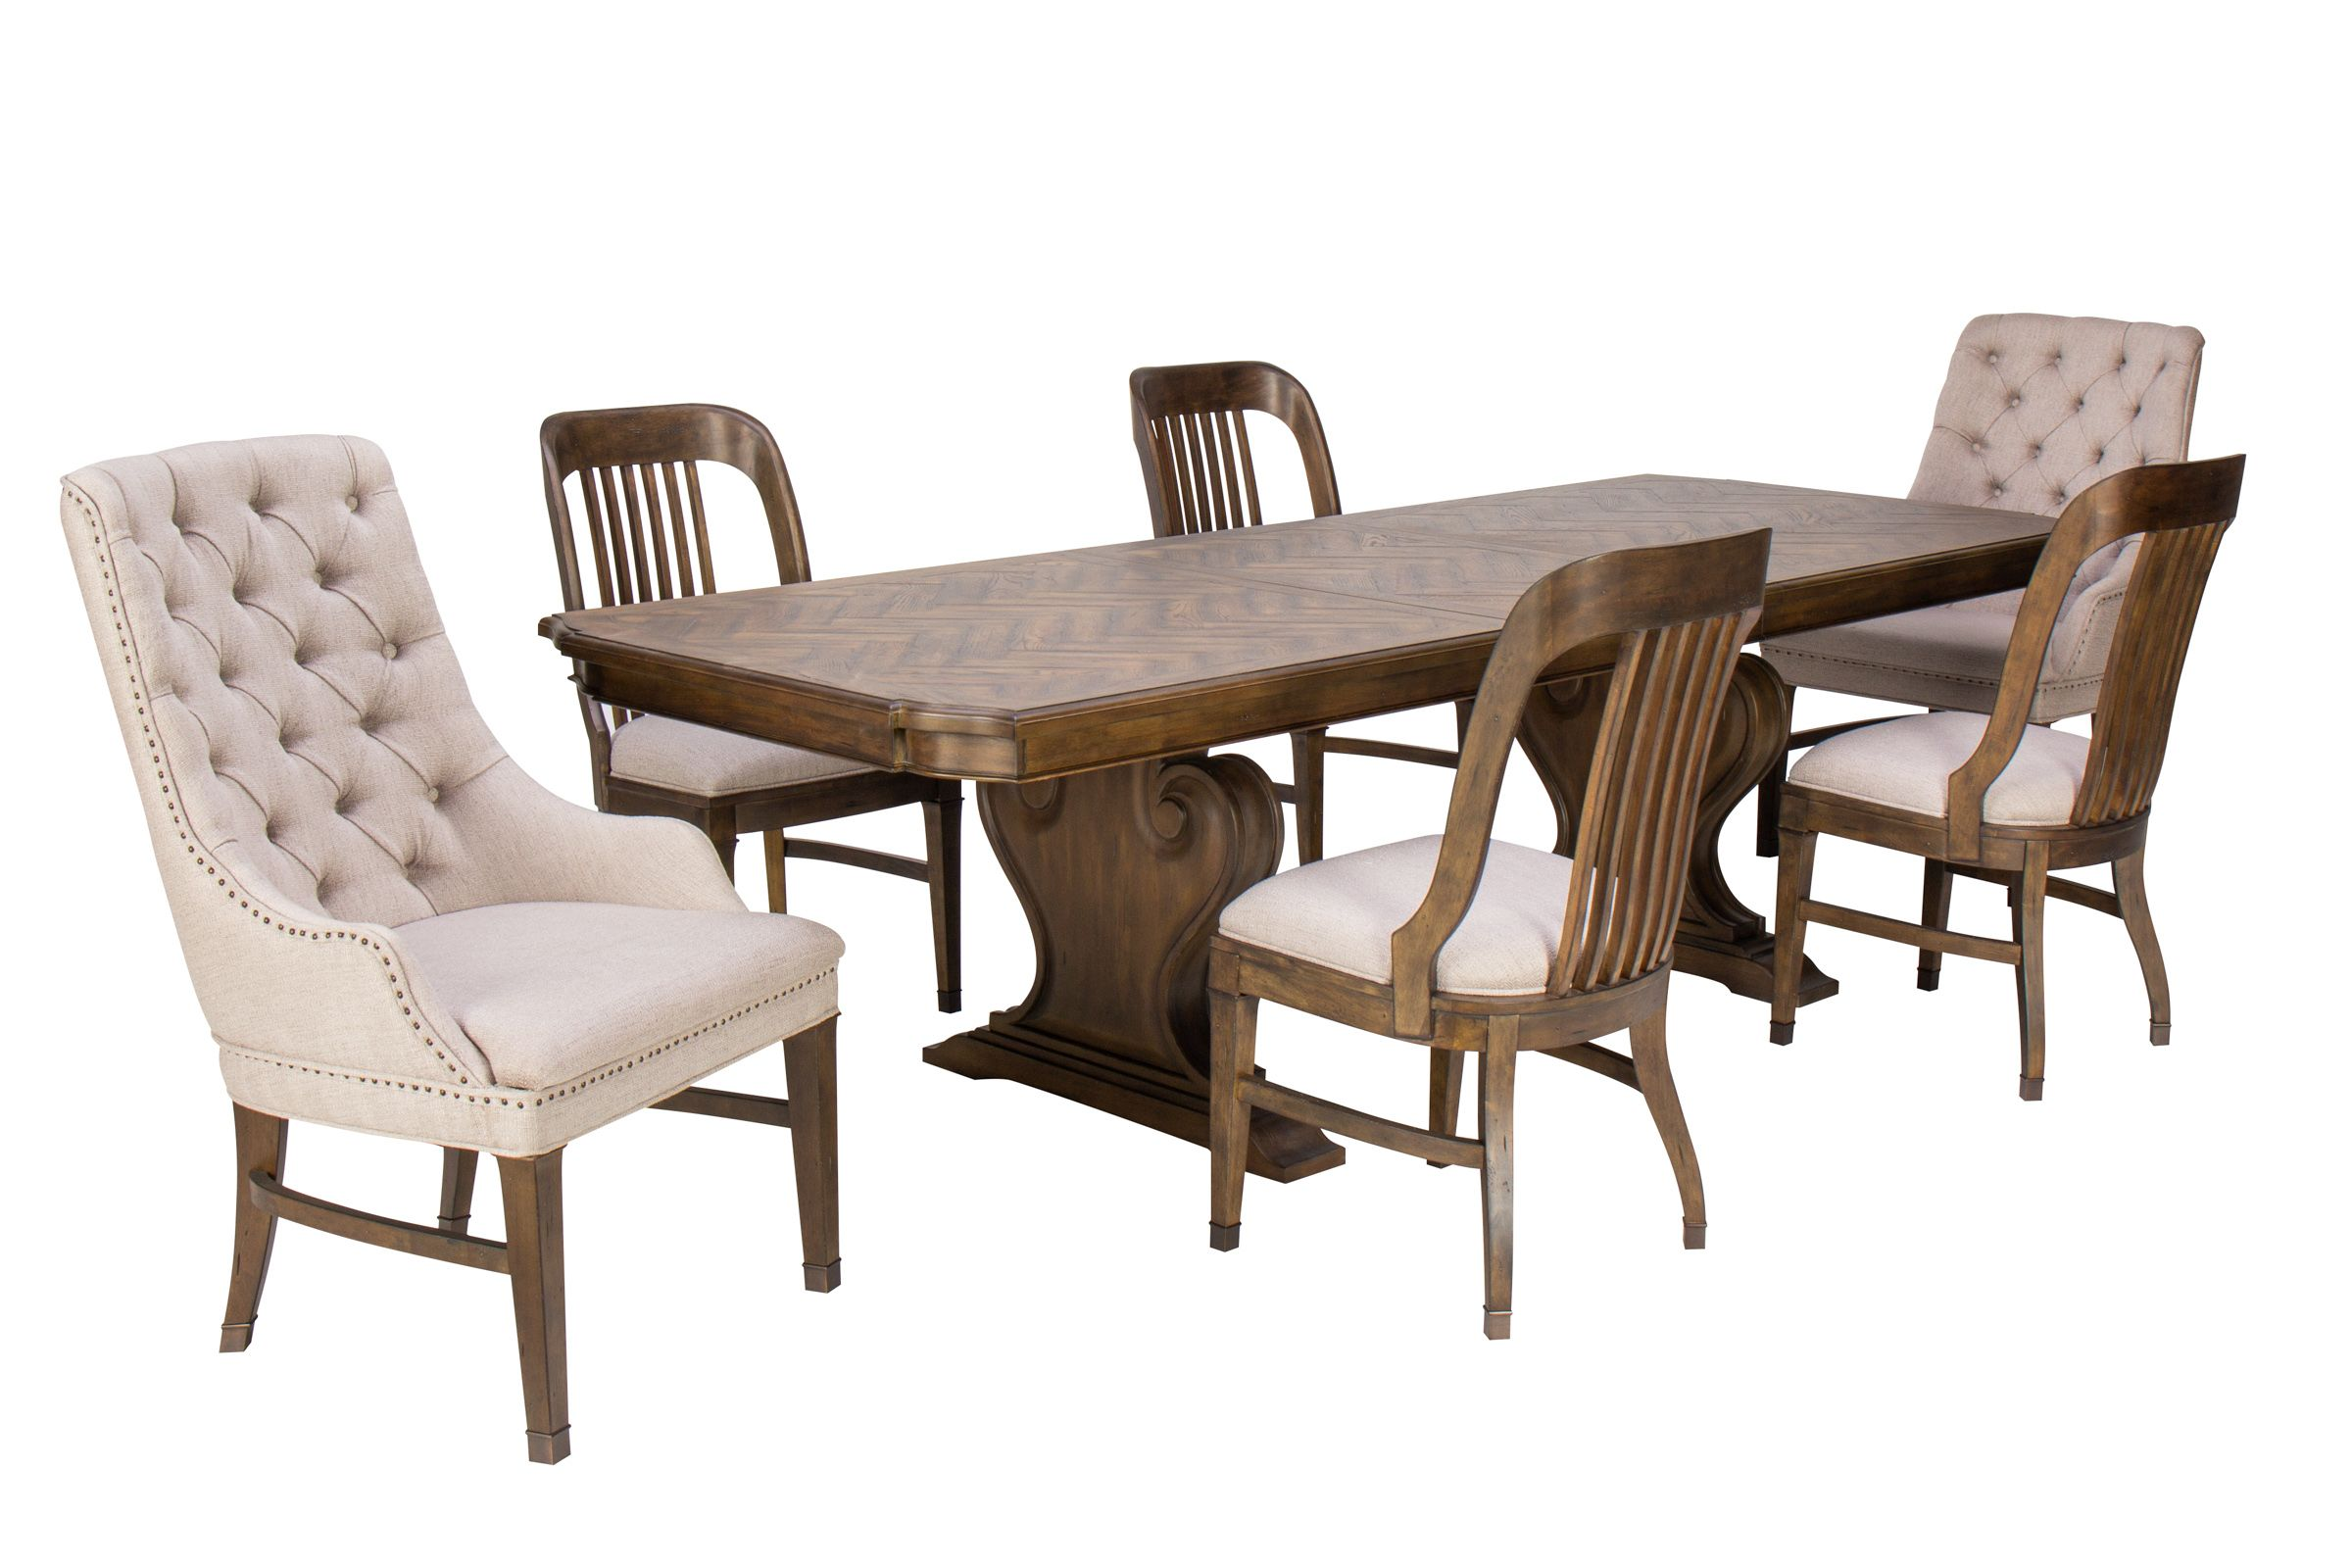 Picture of: Jefferson Dining Table 4 Chairs 2 Host Chairs At Gardner White